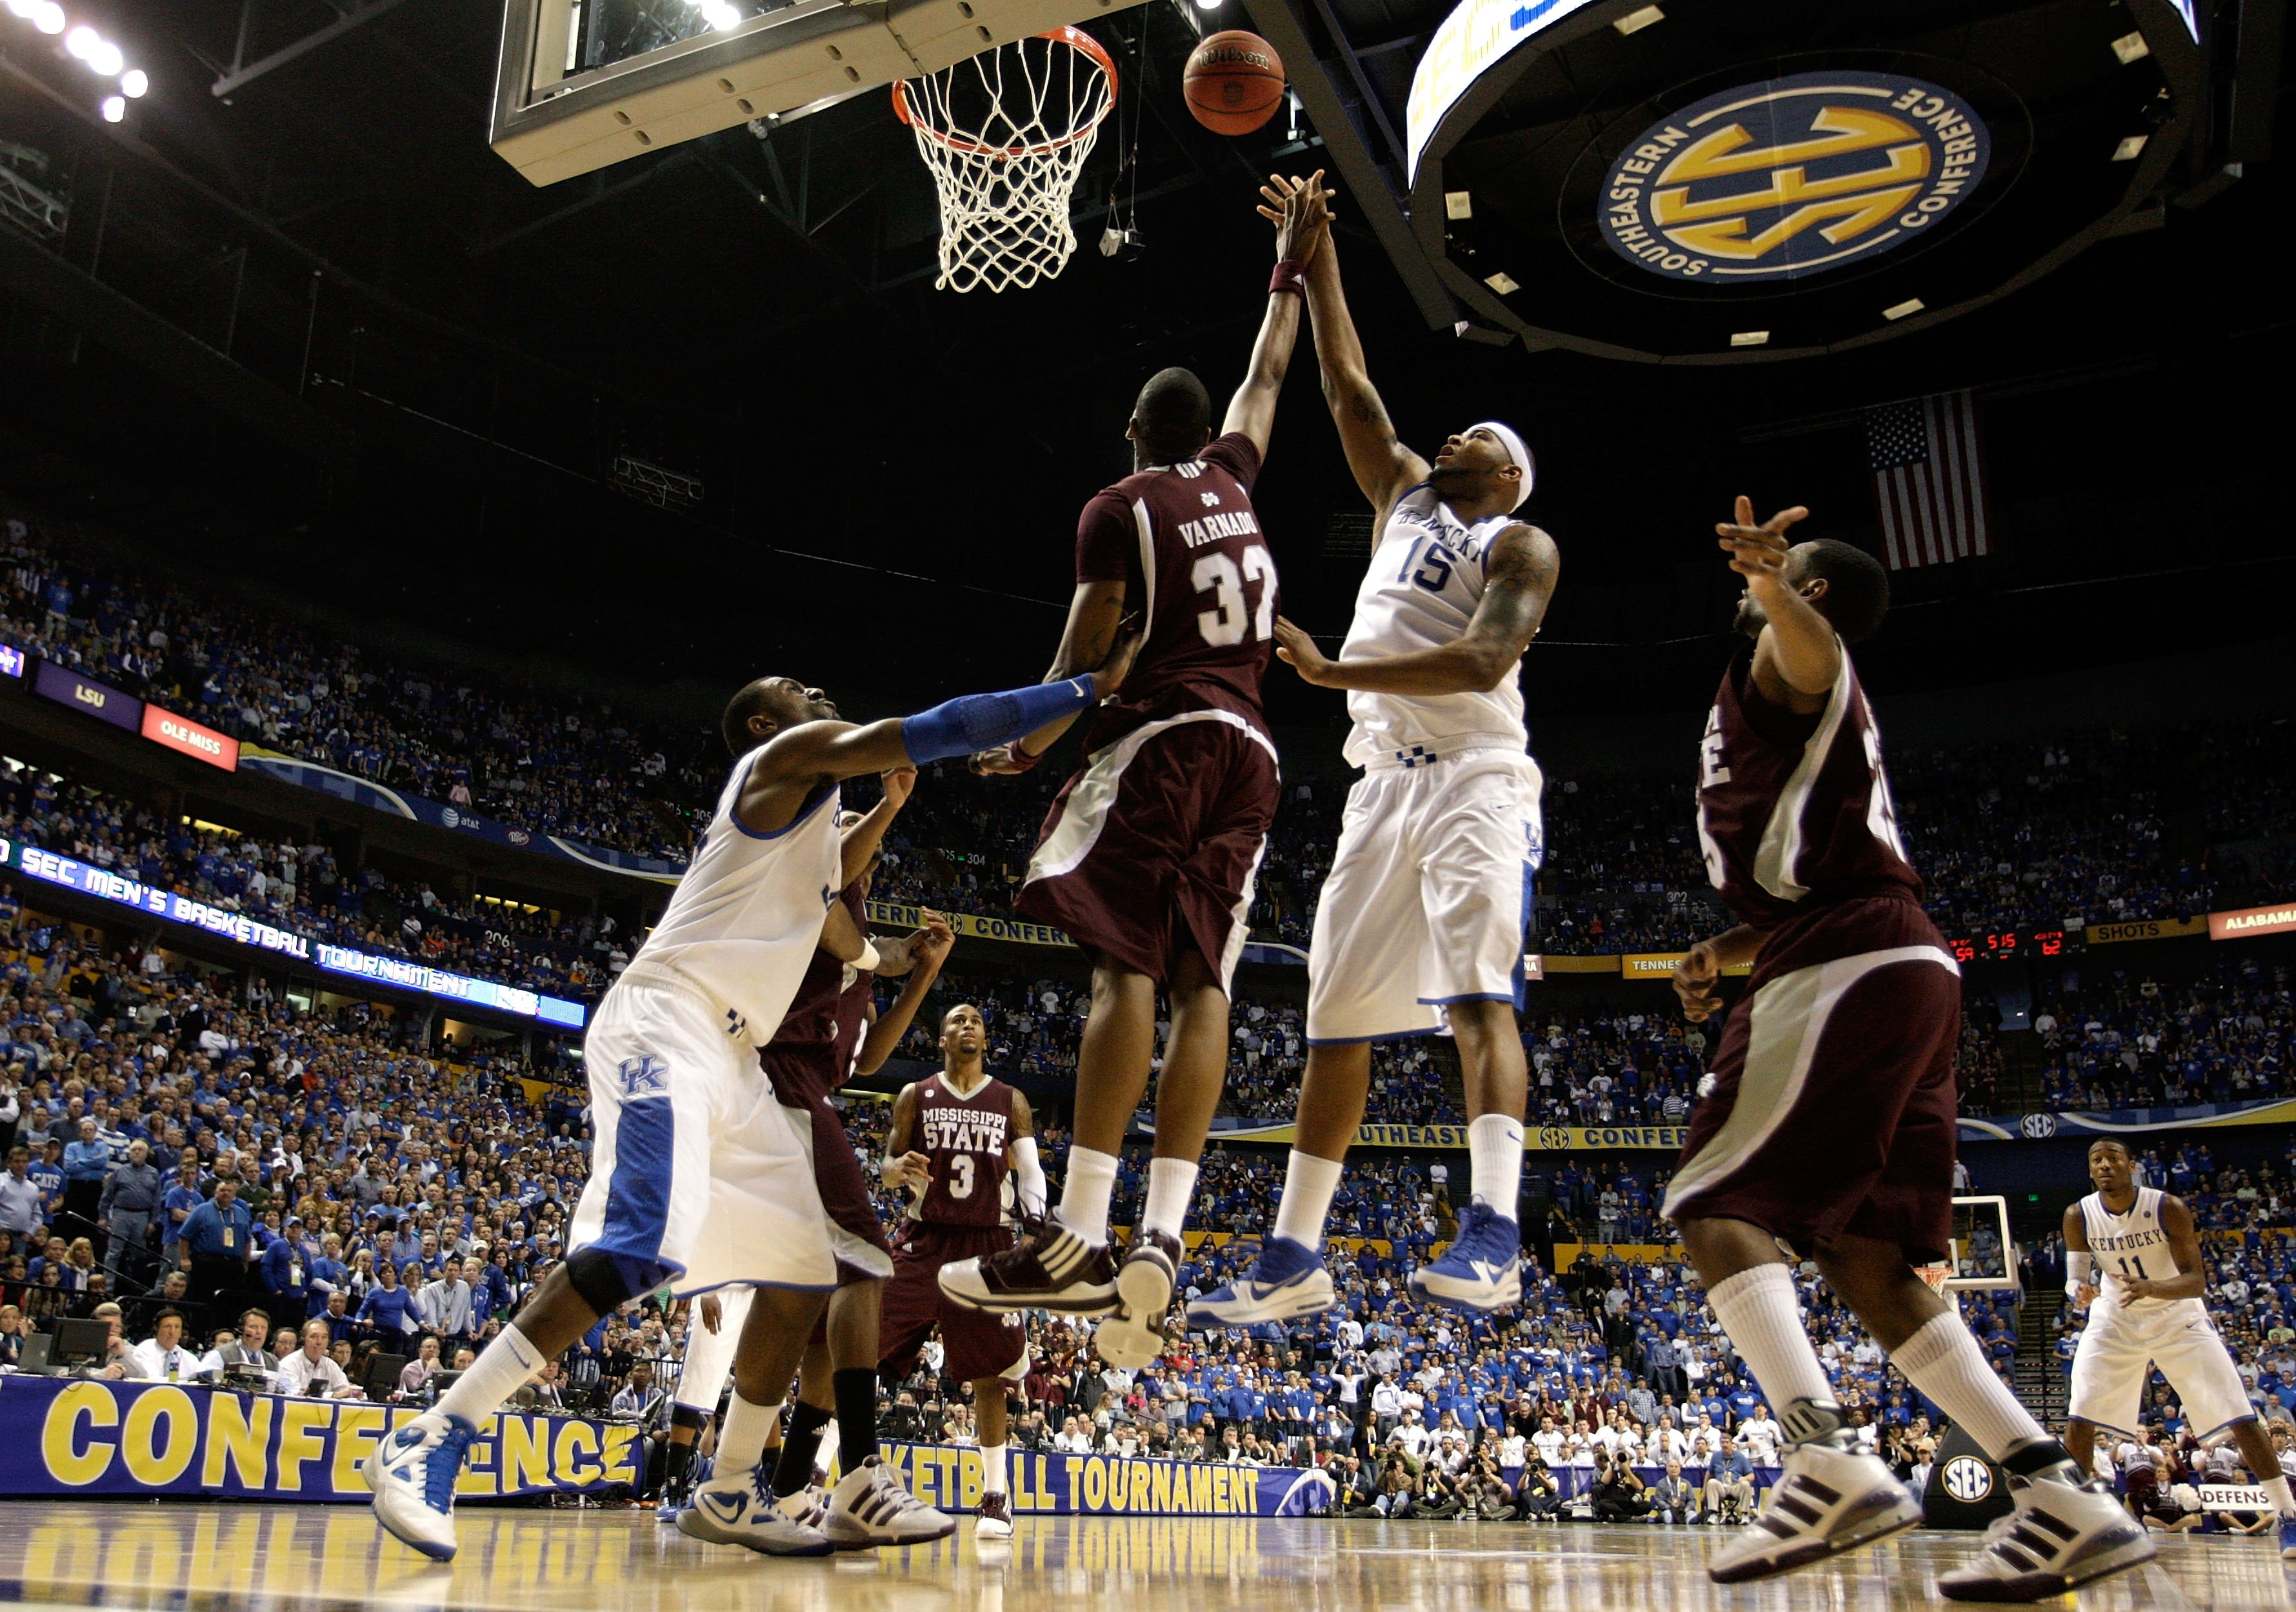 NASHVILLE, TN - MARCH 14:  DeMarcus Cousins #15 of the Kentucky Wildcats attempts a shot against Jarvis Varnado #32 of the Mississippi State Bulldogs during the final of the SEC Men's Basketball Tournament at the Bridgestone Arena on March 14, 2010 in Nas